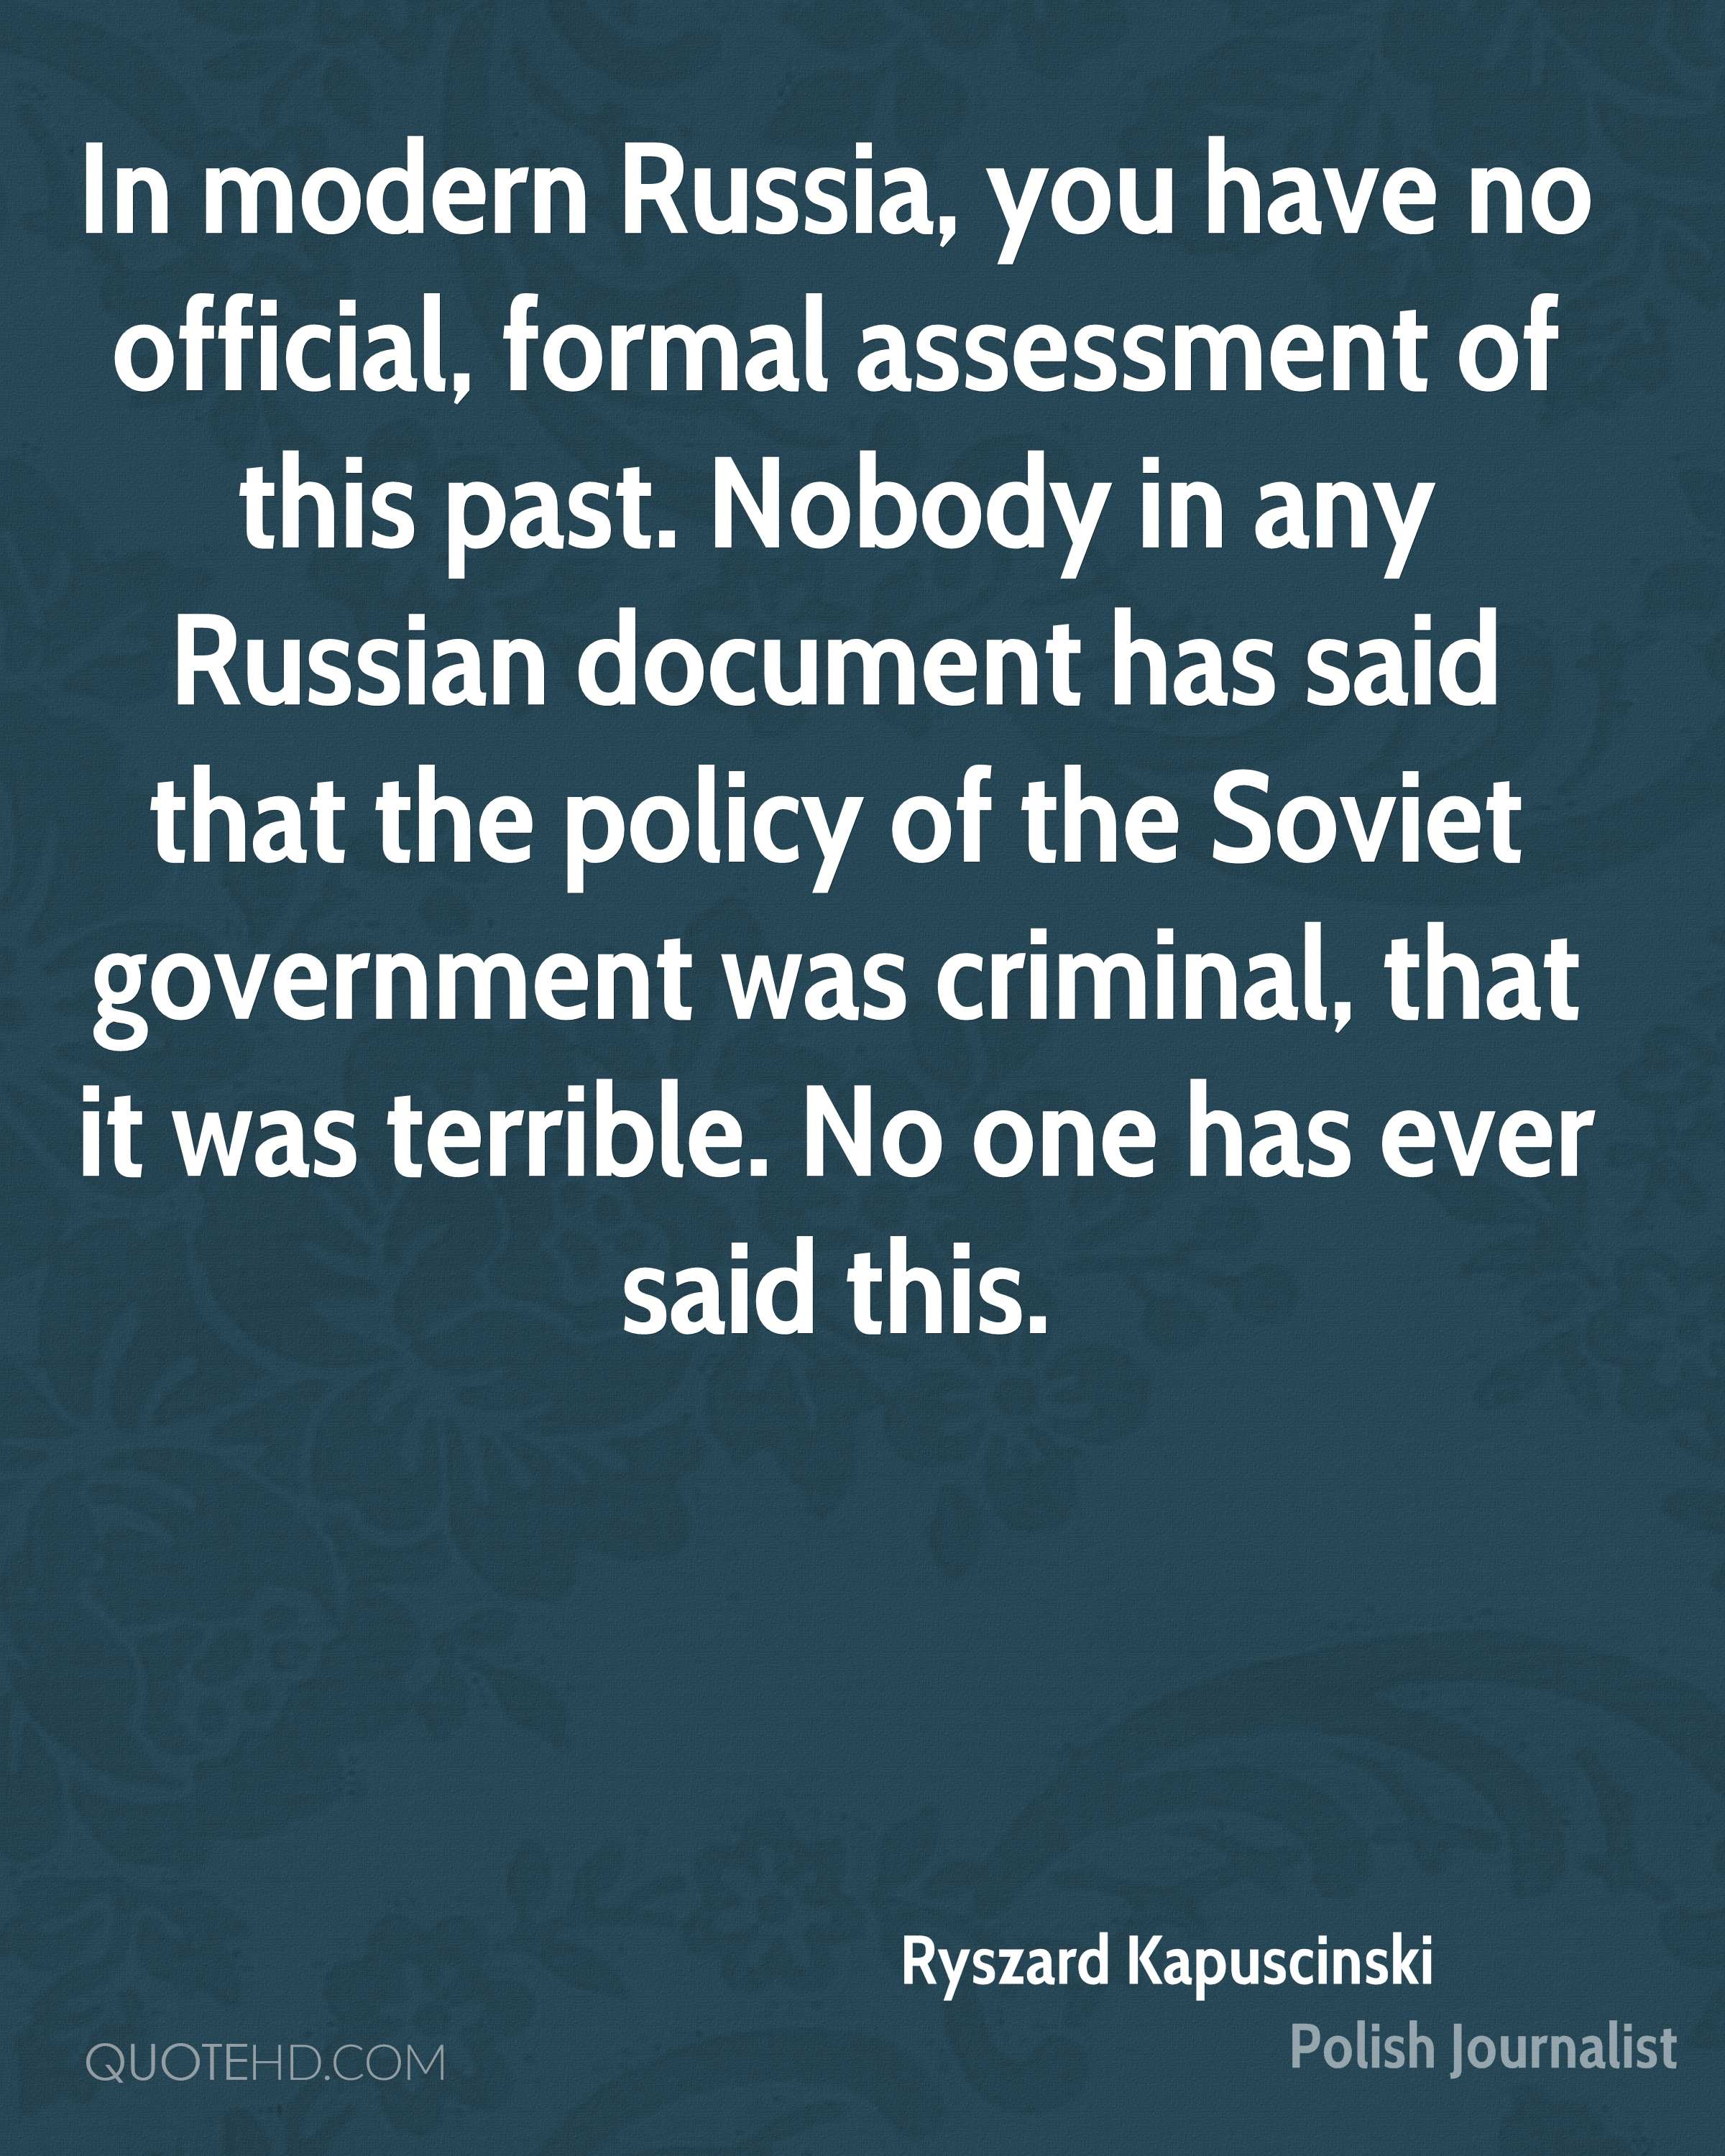 In modern Russia, you have no official, formal assessment of this past. Nobody in any Russian document has said that the policy of the Soviet government was criminal, that it was terrible. No one has ever said this.